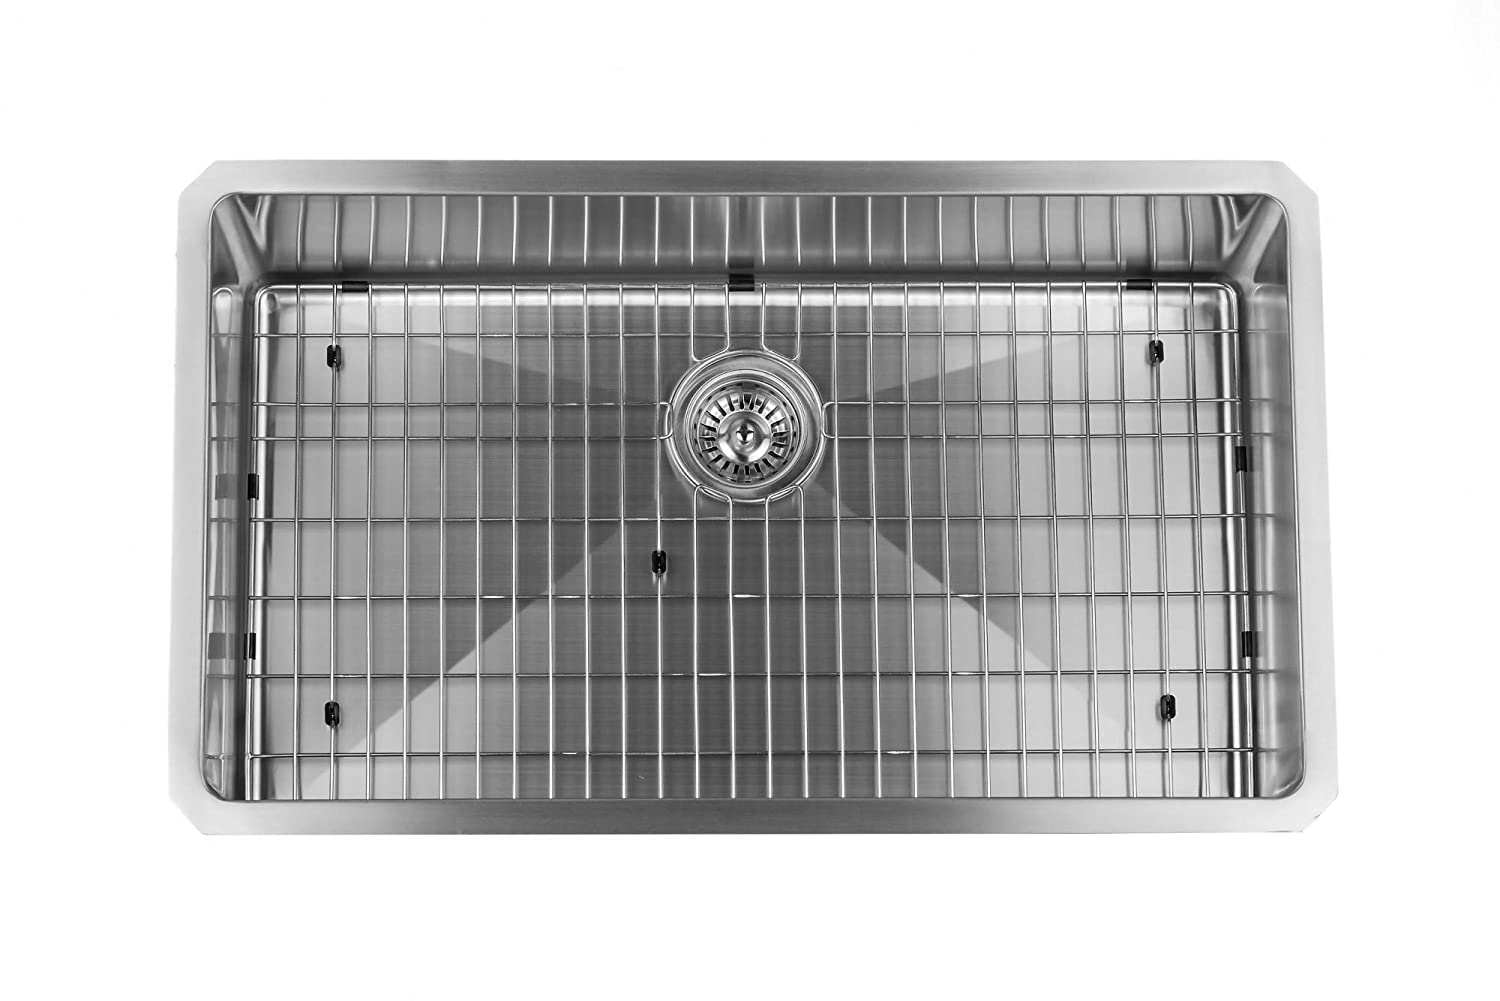 Miseno MSS3219SR Undermount 32  X 19  Stainless Steel (16 gauge) Kitchen Sink - Includes Basin Rack and Drain - - Amazon.com  sc 1 st  Amazon.com & Miseno MSS3219SR Undermount 32